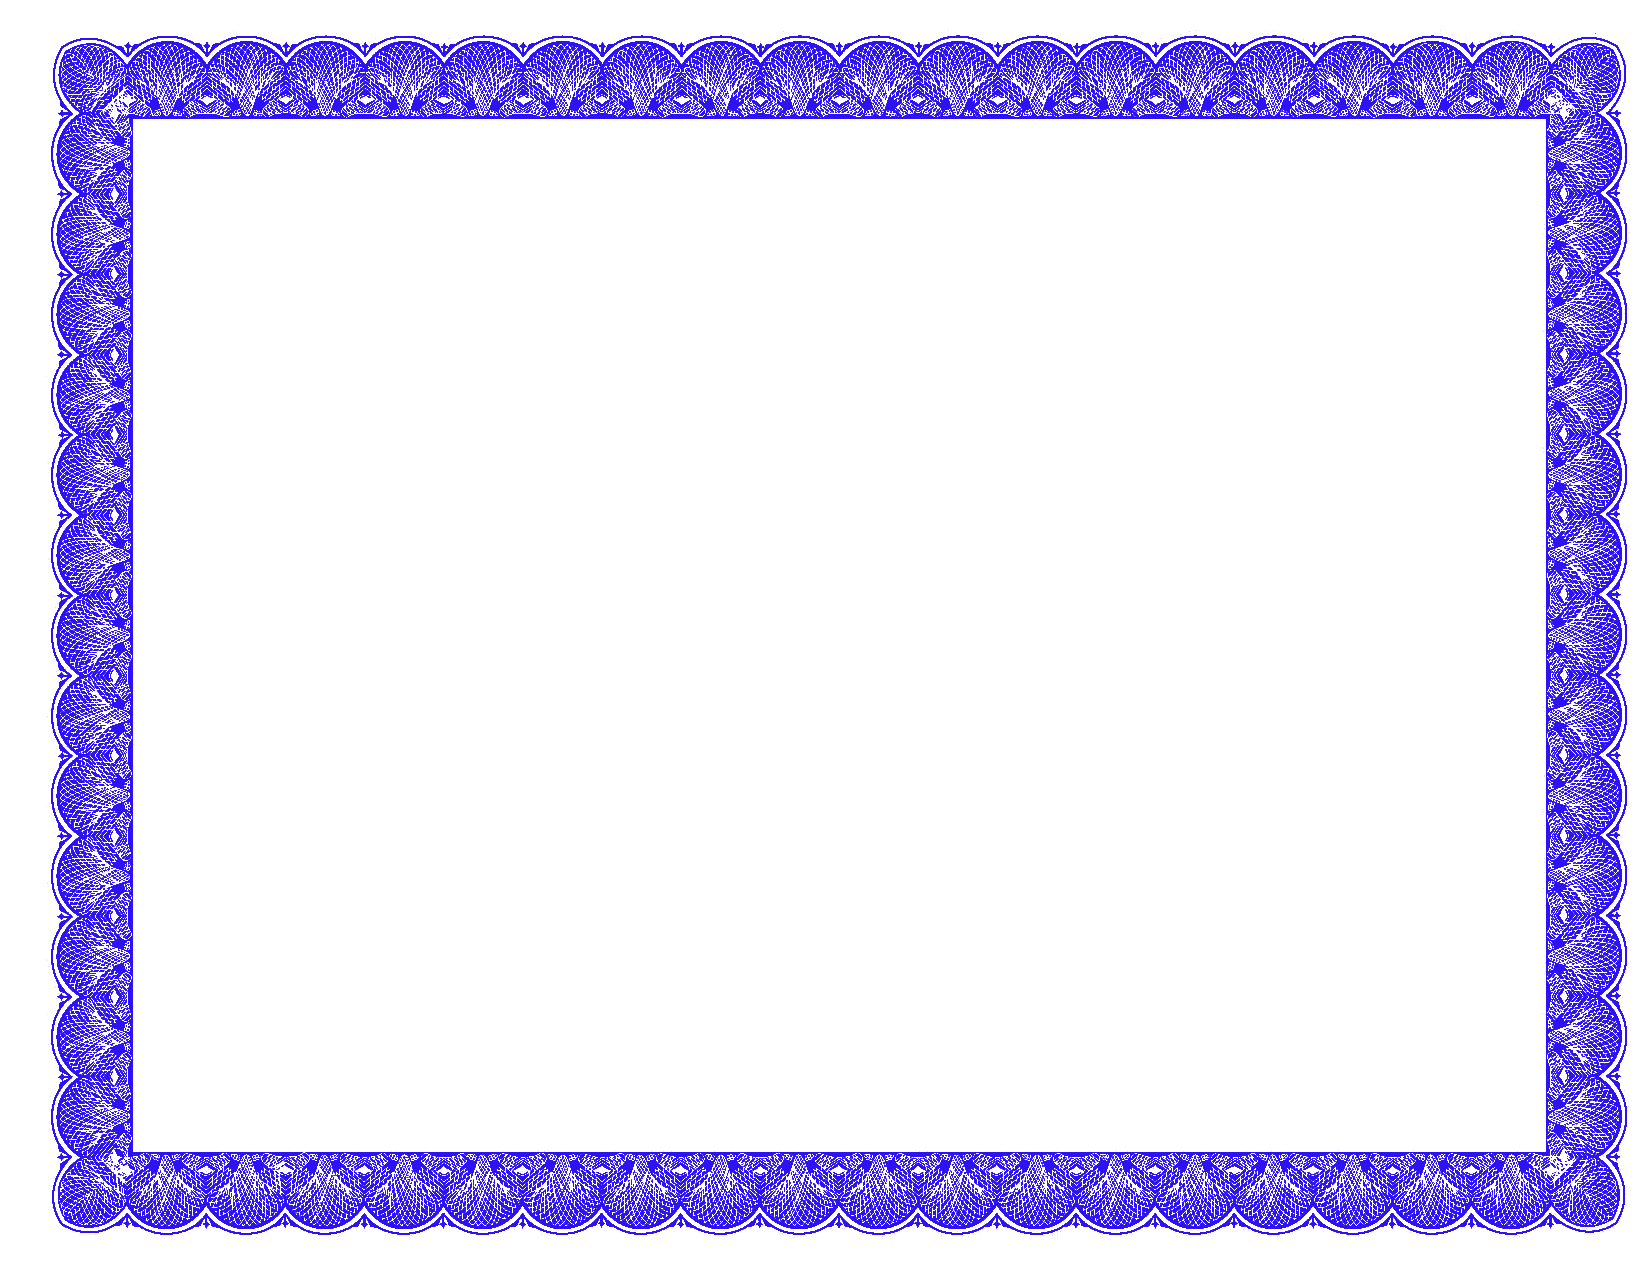 Blue certificate border clipart.